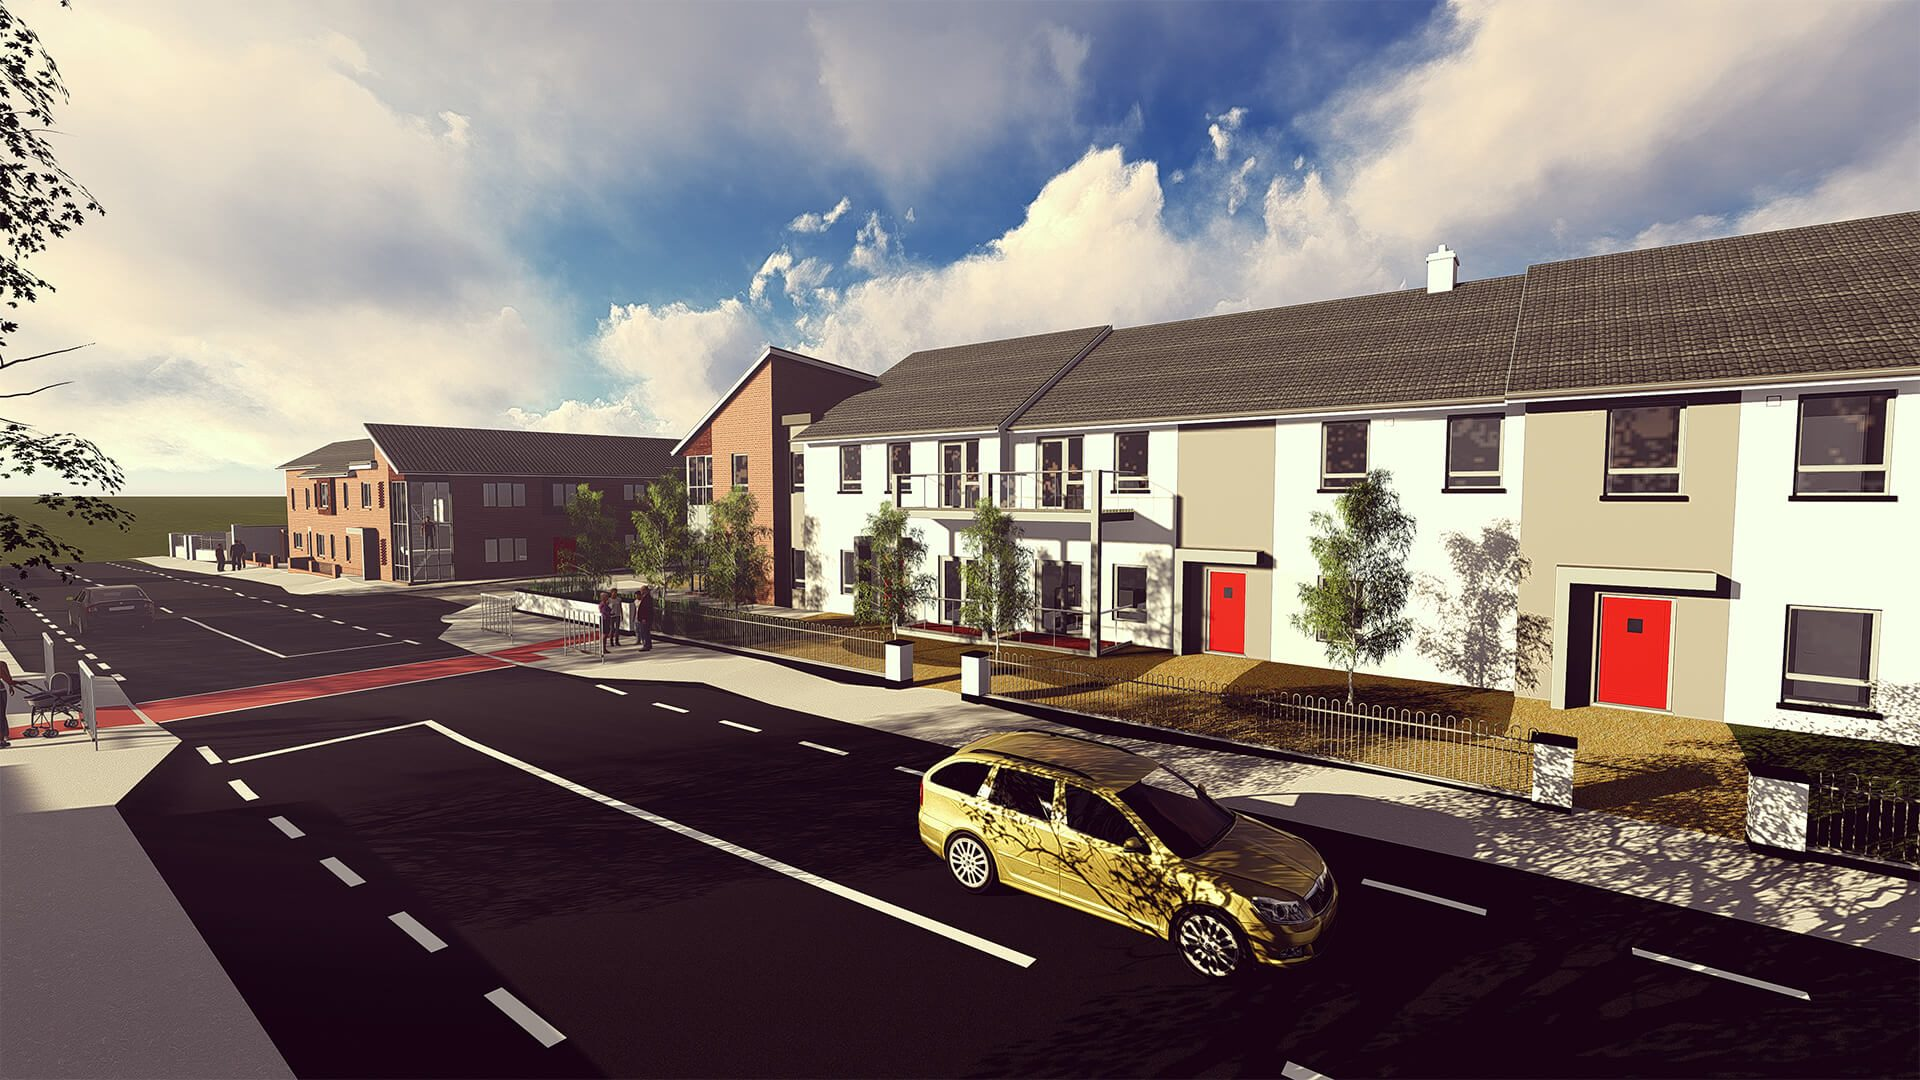 Kilkenny County Council Residential Development - Social Housing & Redevelopment of The Bróg Maker, Castlecomer Road, Co. Kilkenny, Ireland